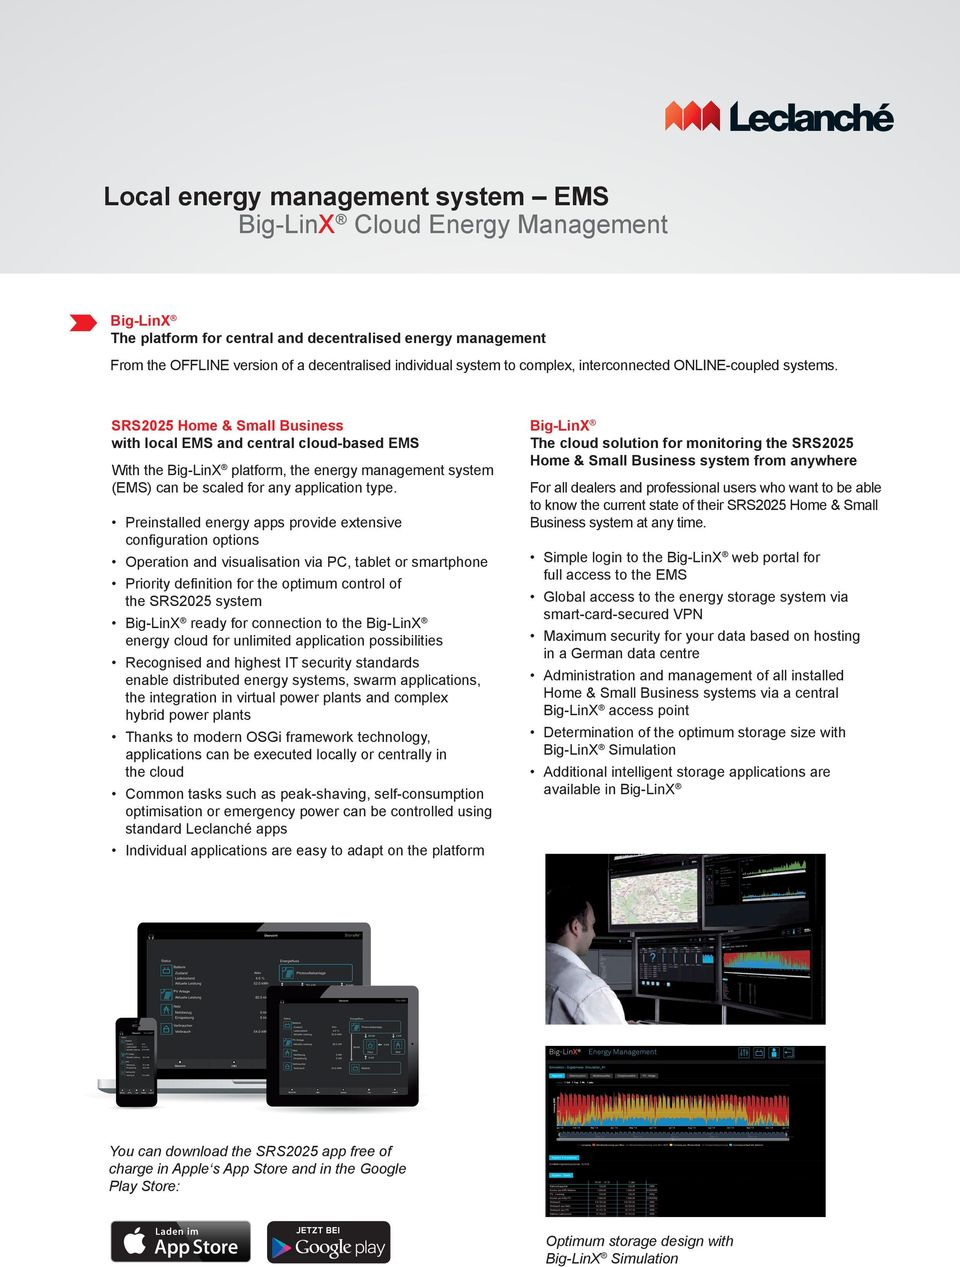 SRS2025 Home & Small Business with local EMS and central cloud-based EMS With the Big-LinX platform, the energy management system (EMS) can be scaled for any application type.